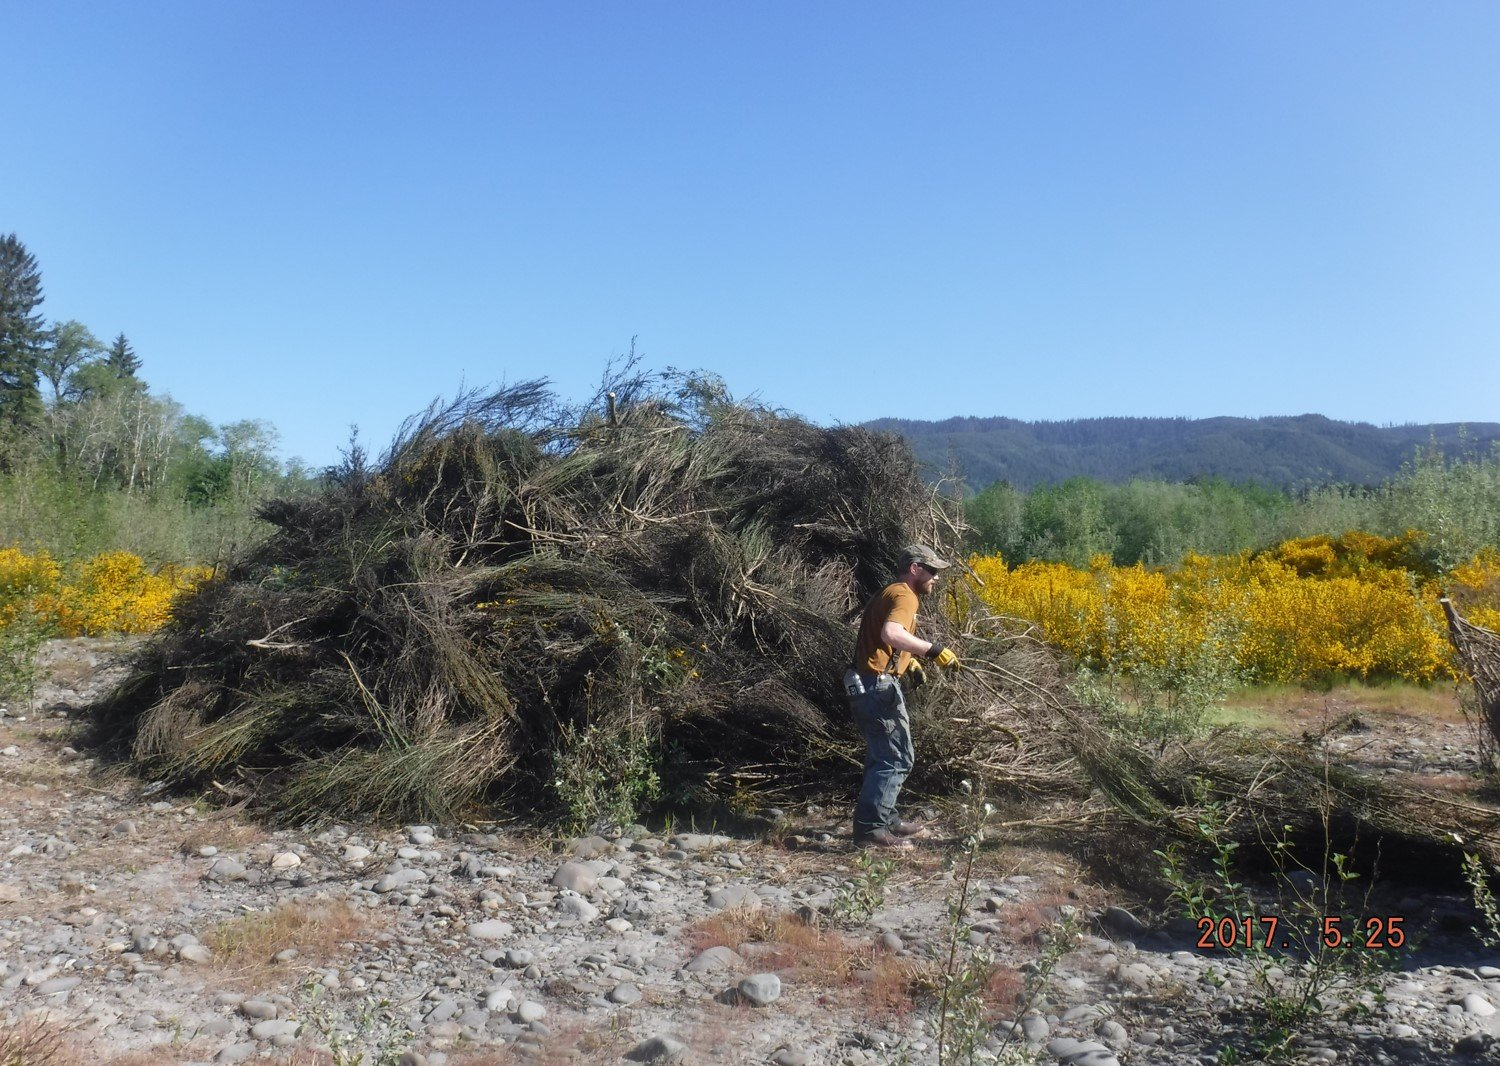 10,000 Years Institute restoration crew lead Eli DeMatteis piles cut and treated Scotch broom at Elk Creek on the Hoh River.